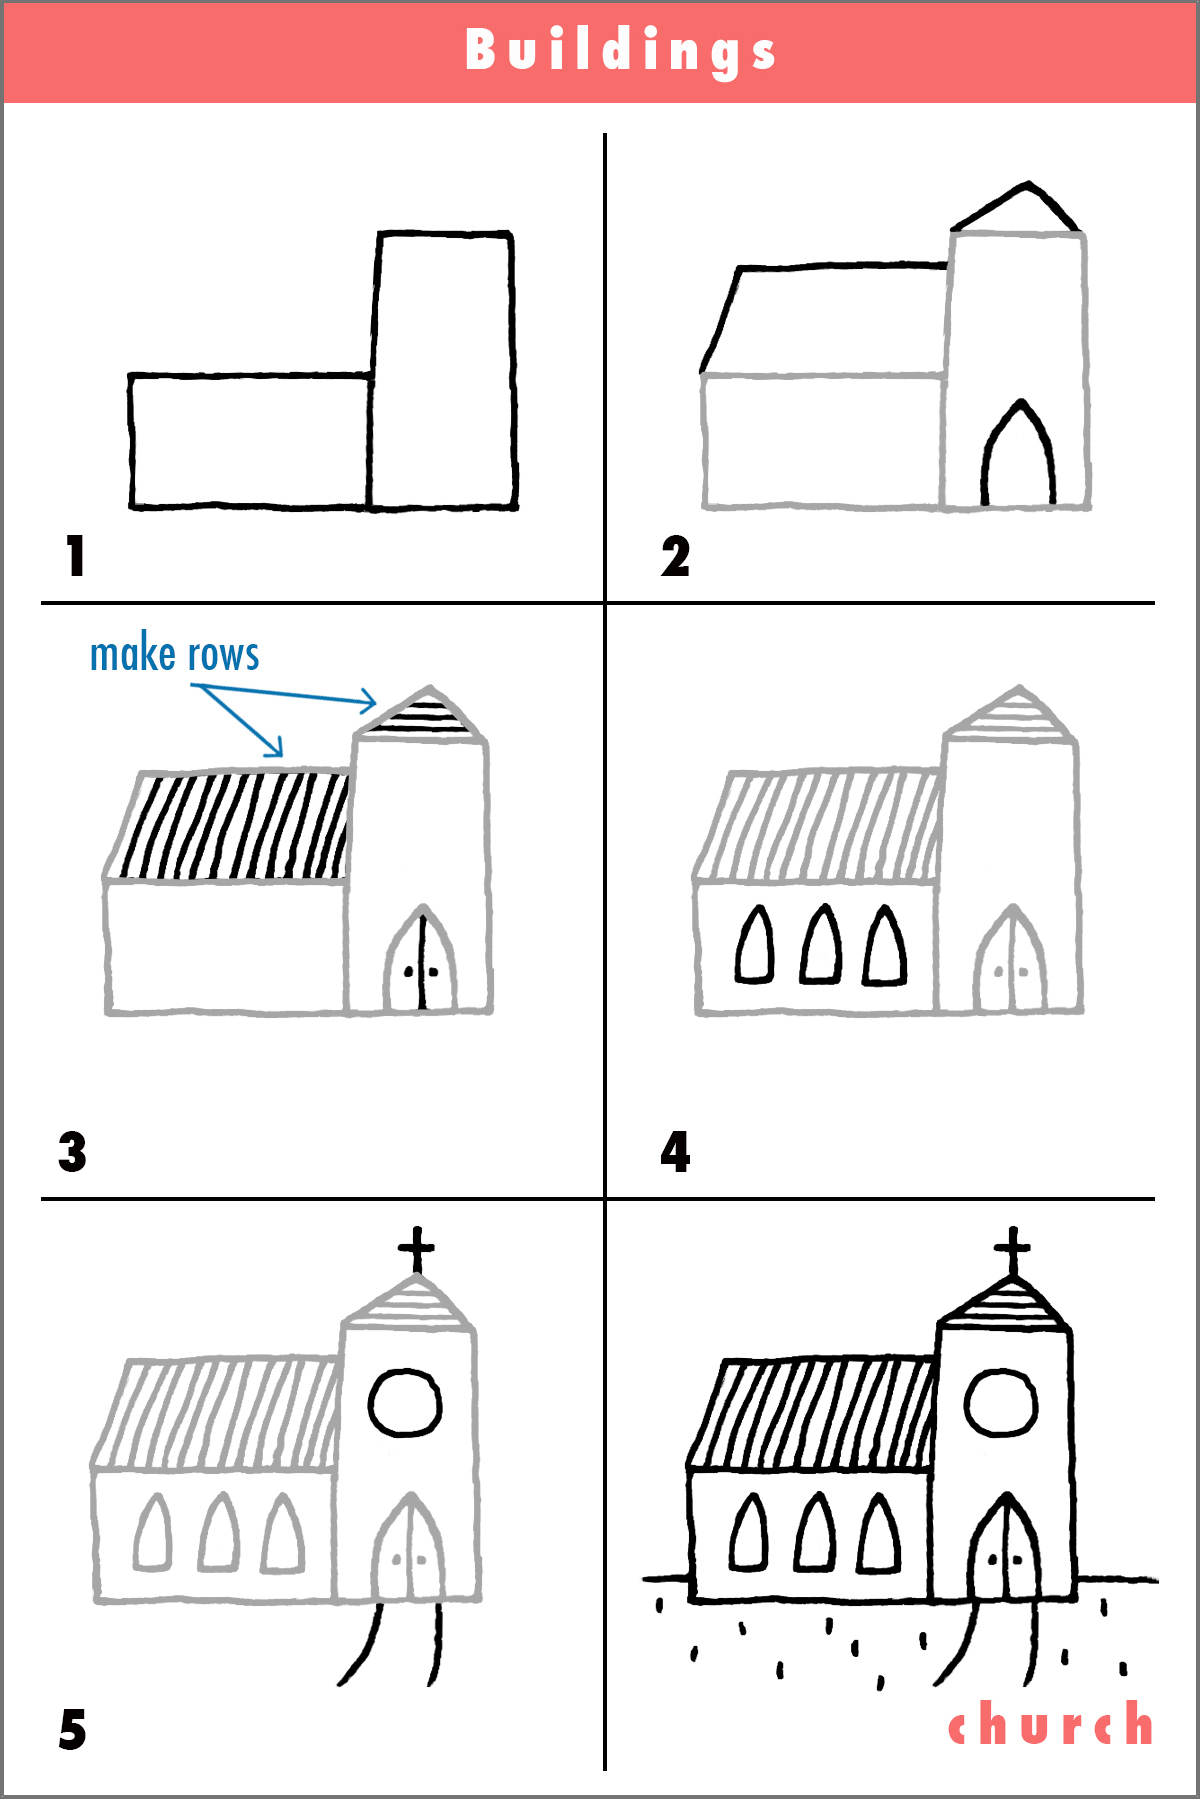 Church draw step by step cartoon pencil fun simple shapes for How to build a house step by step